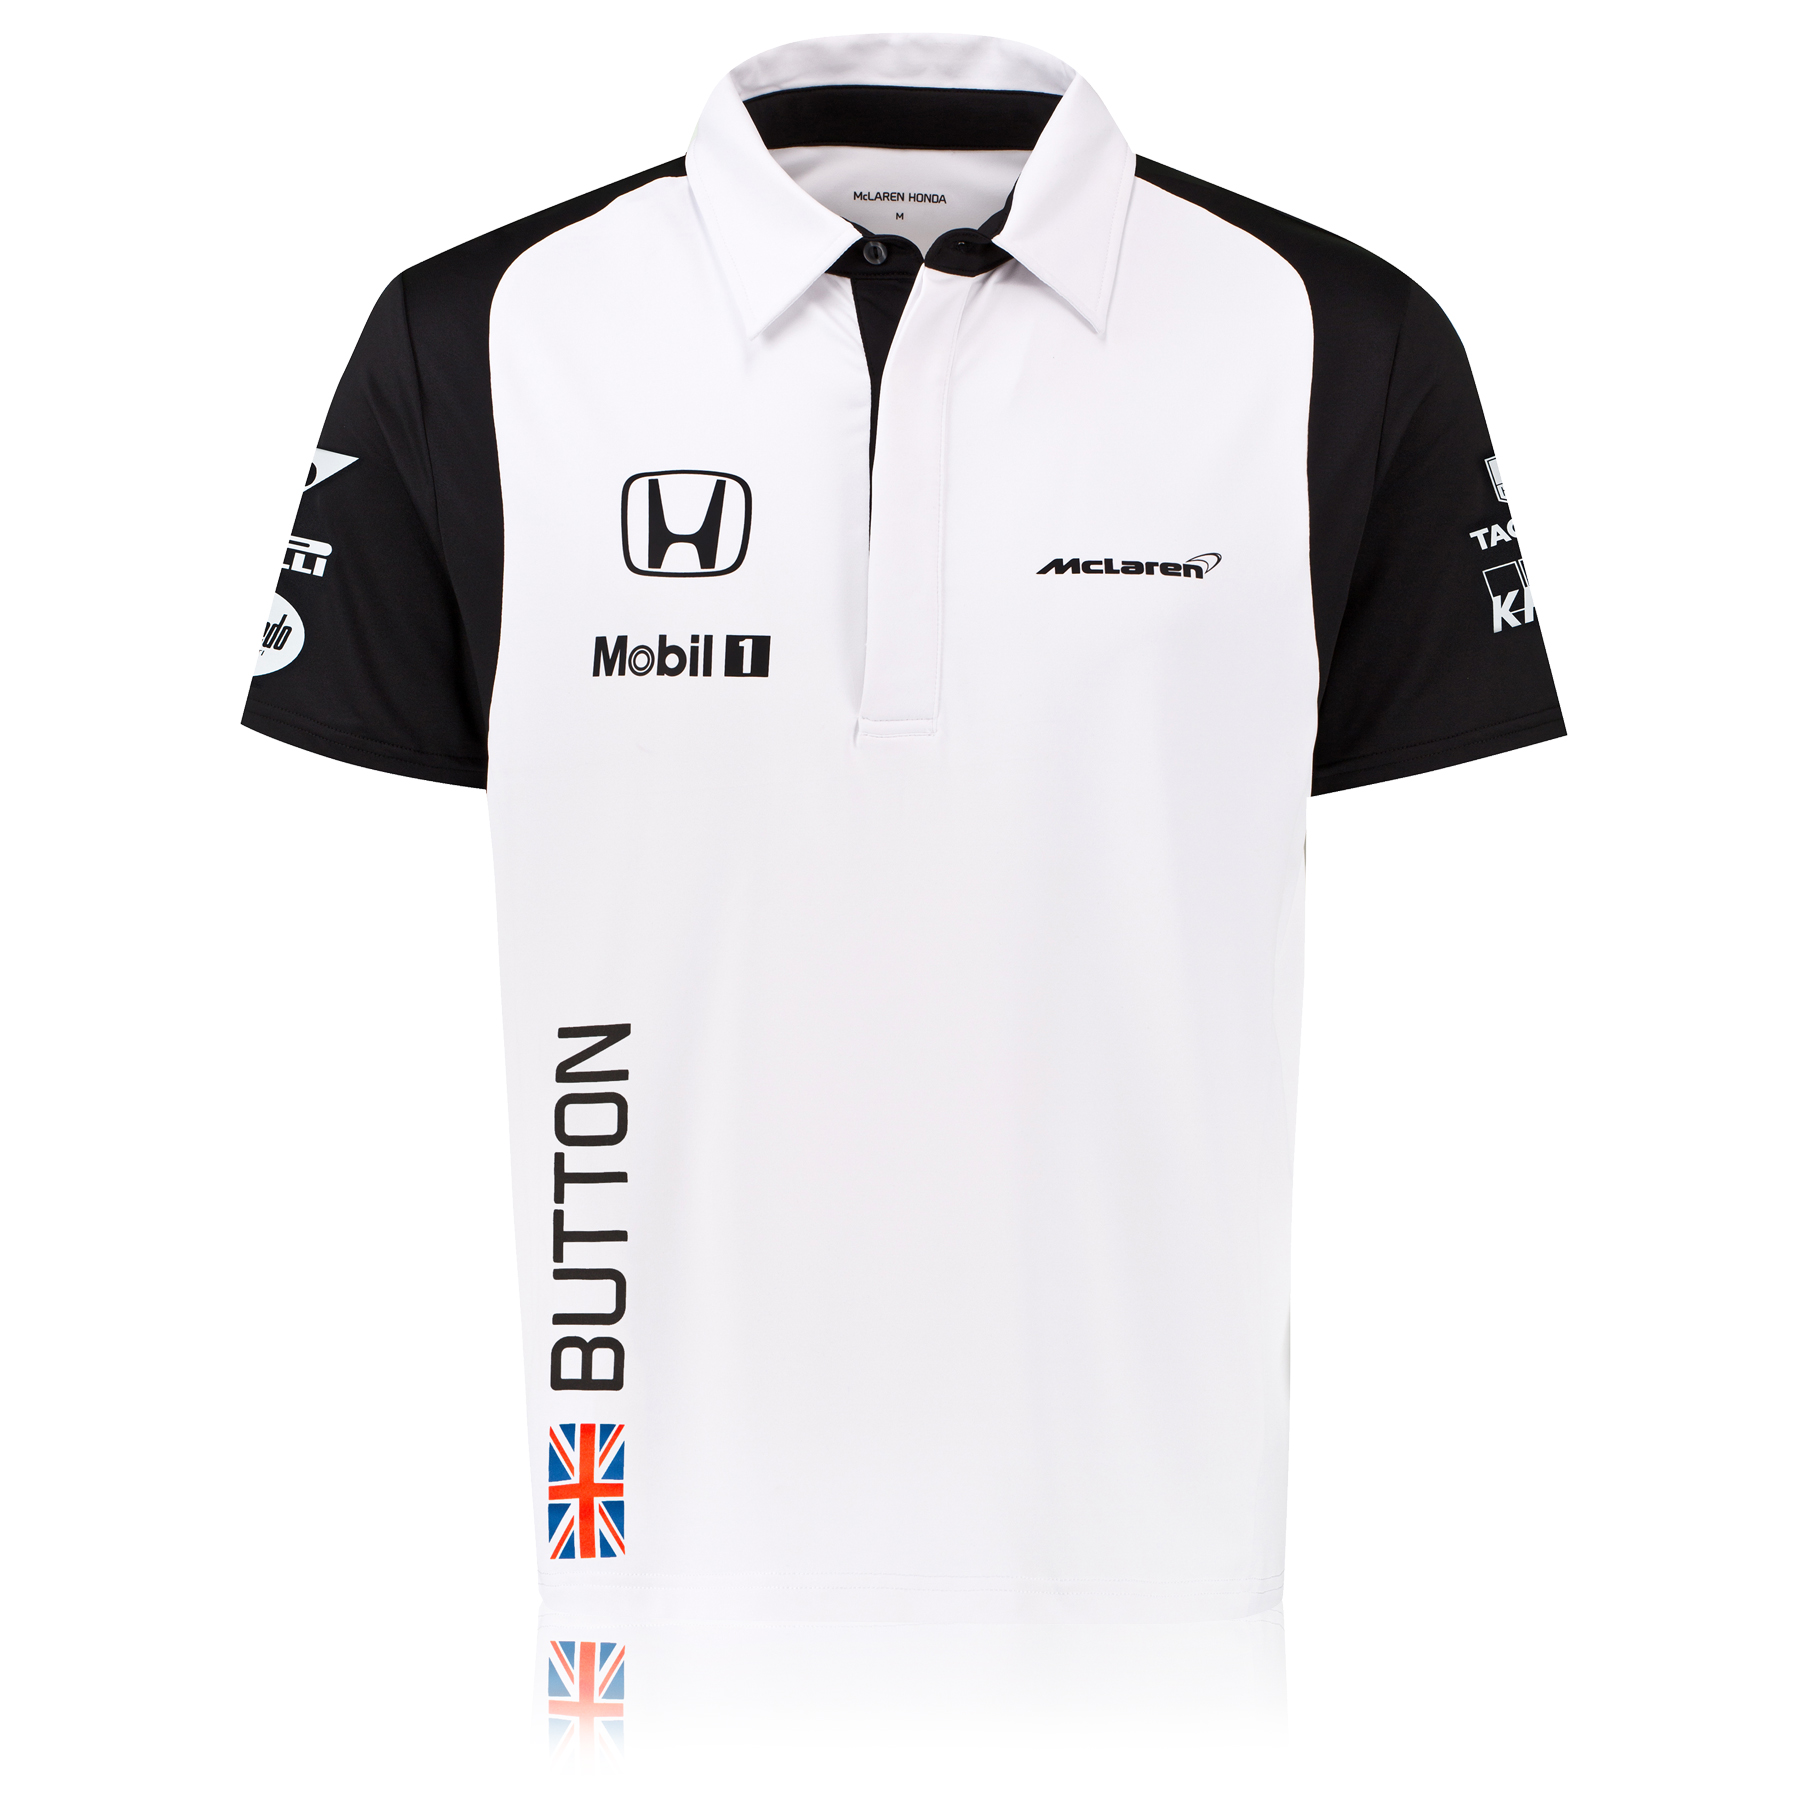 McLaren Honda Jenson Button Team Polo Male White